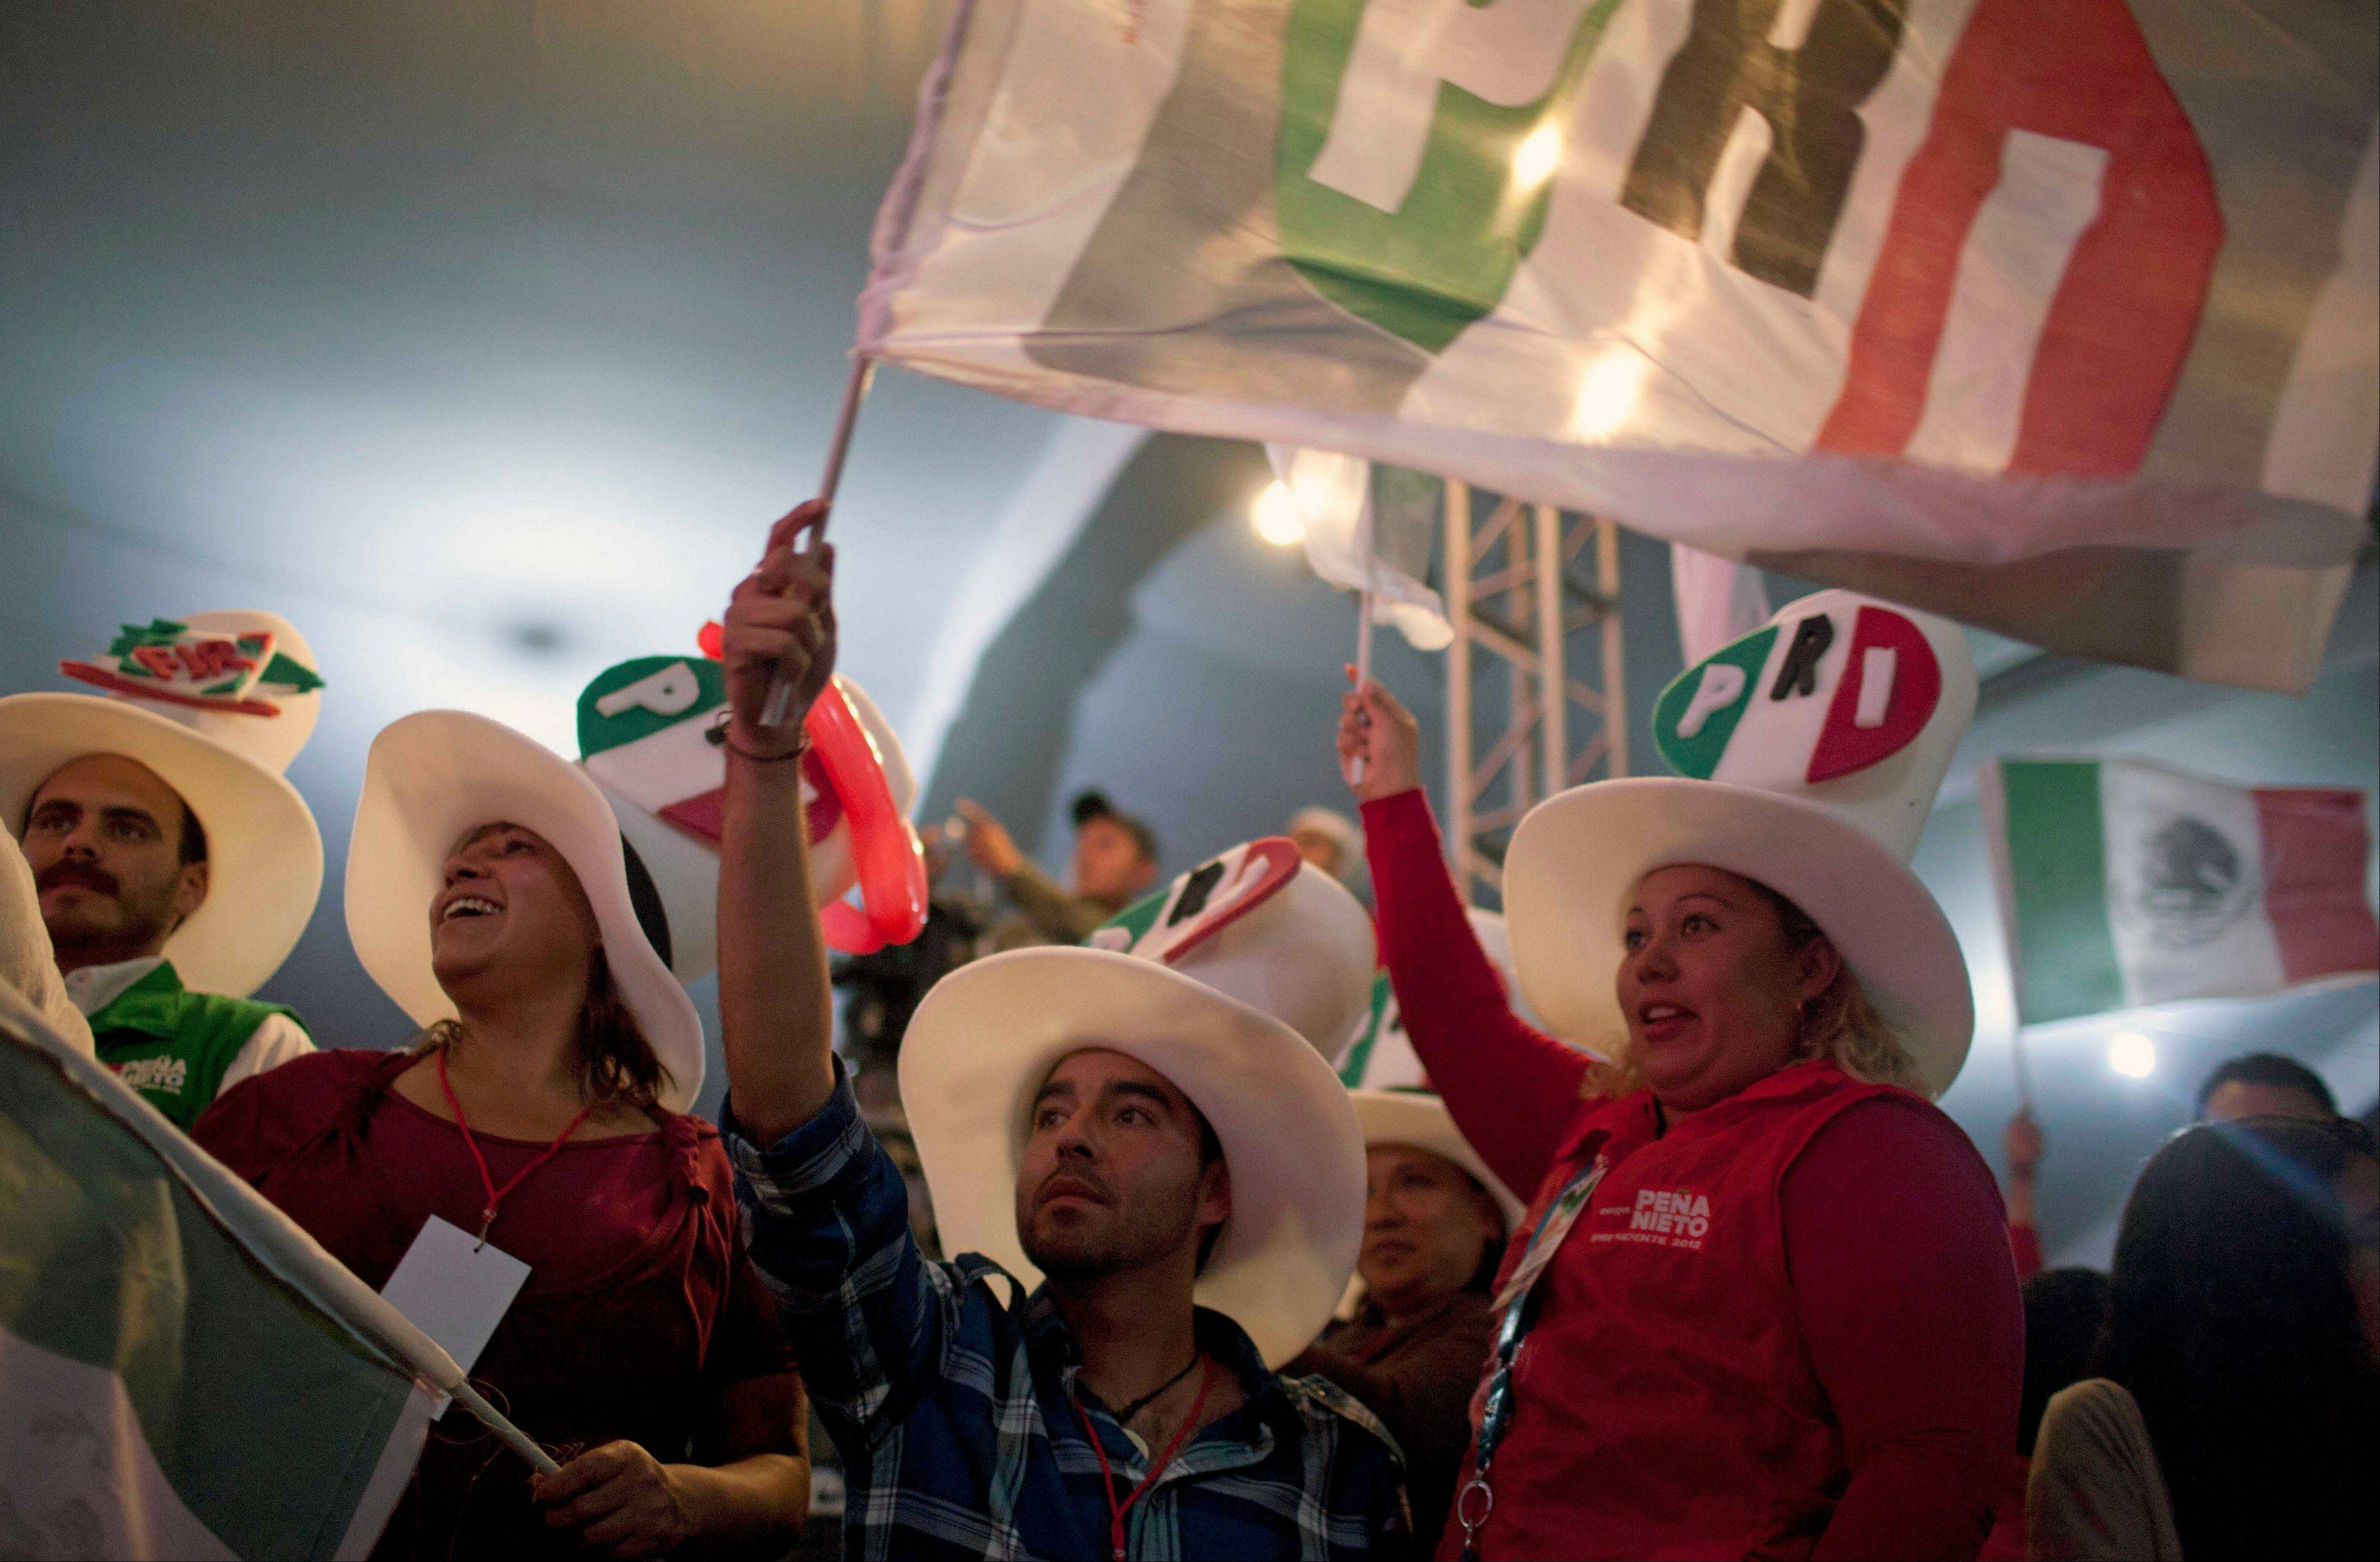 The Institutional Revolutionary Party, or PRI, reclaims the presidency Saturday, Dec. 1, 2012 after 12 years out of power, and President-elect Enrique Pena Nieto calls it a crowning moment of an effort to reform and modernize the party that ruled without interruption from 1929 to 2000.